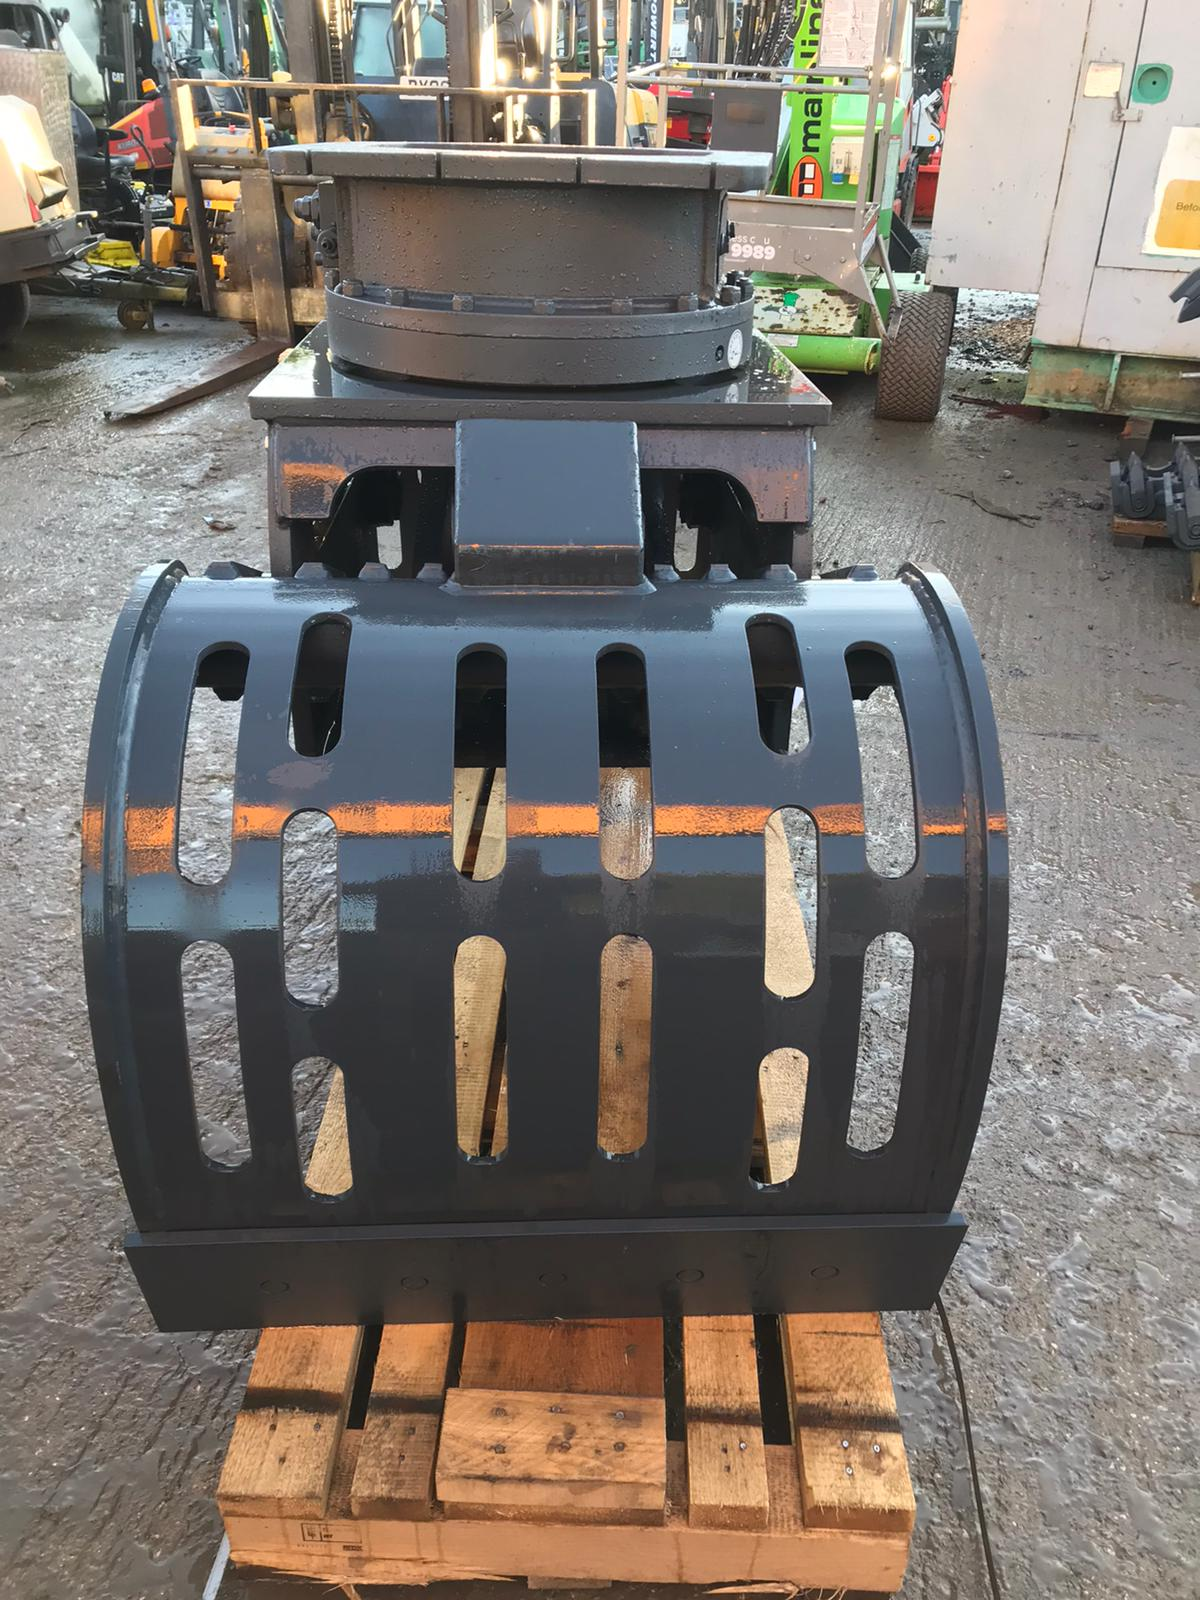 MUSTANG GRP1000 ROTATING GRAPPLE, YEAR 2019, NEW AND UNUSED - TO SUIT 13-19 TON EXCAVATOR *PLUS VAT* - Image 4 of 6